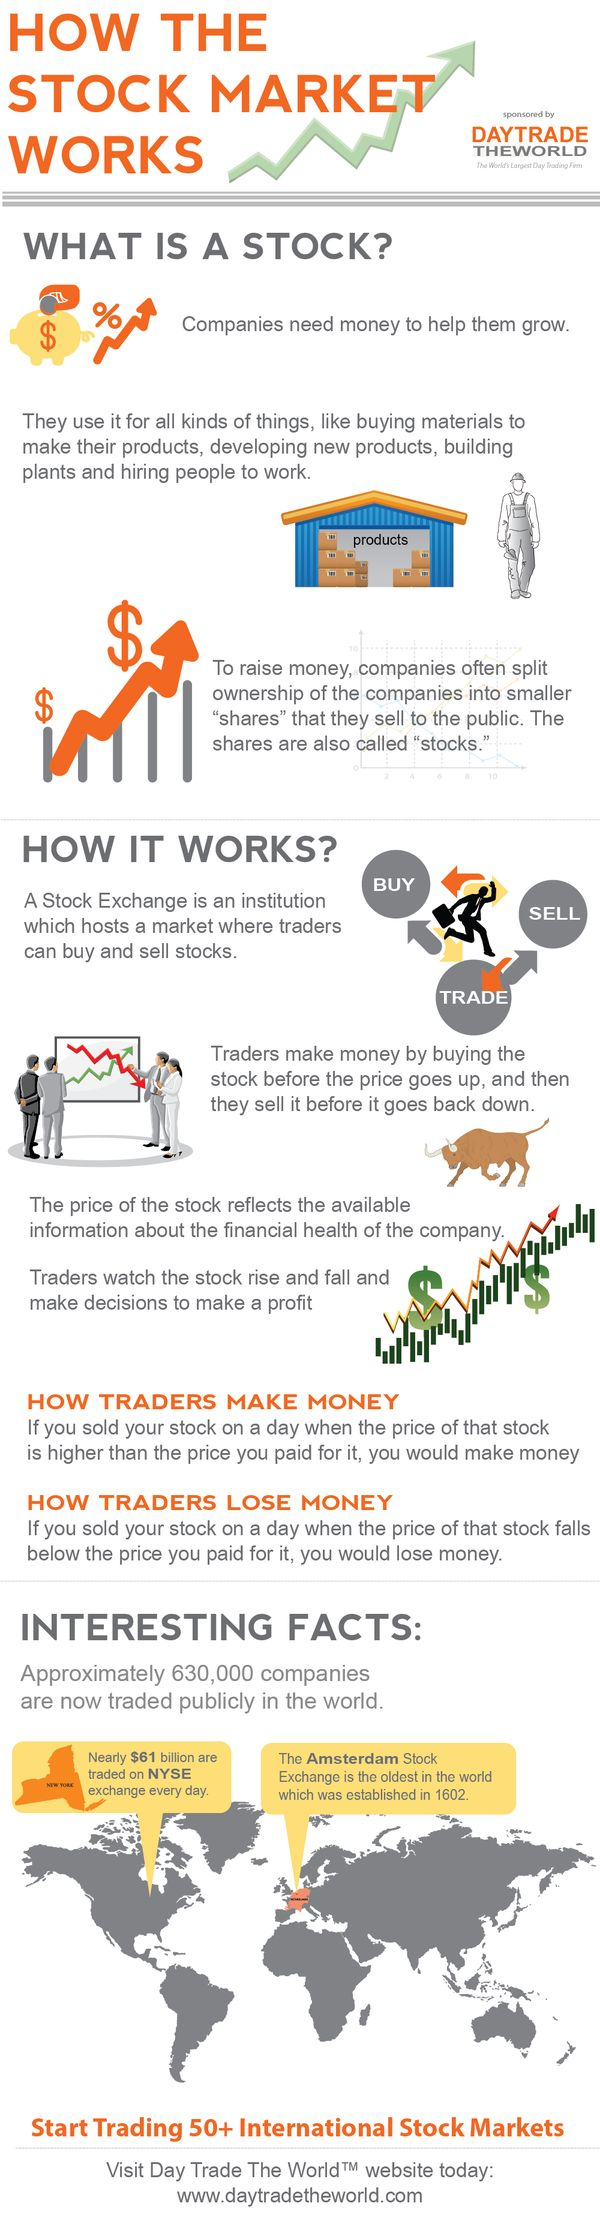 how-the-stock-market-works-infographic James Baldi Primerica representative 508-642-5221 jbaldi@primerica.com http://www.primerica.com/jamesbaldi http://www.primericabusinessopportunity.com/